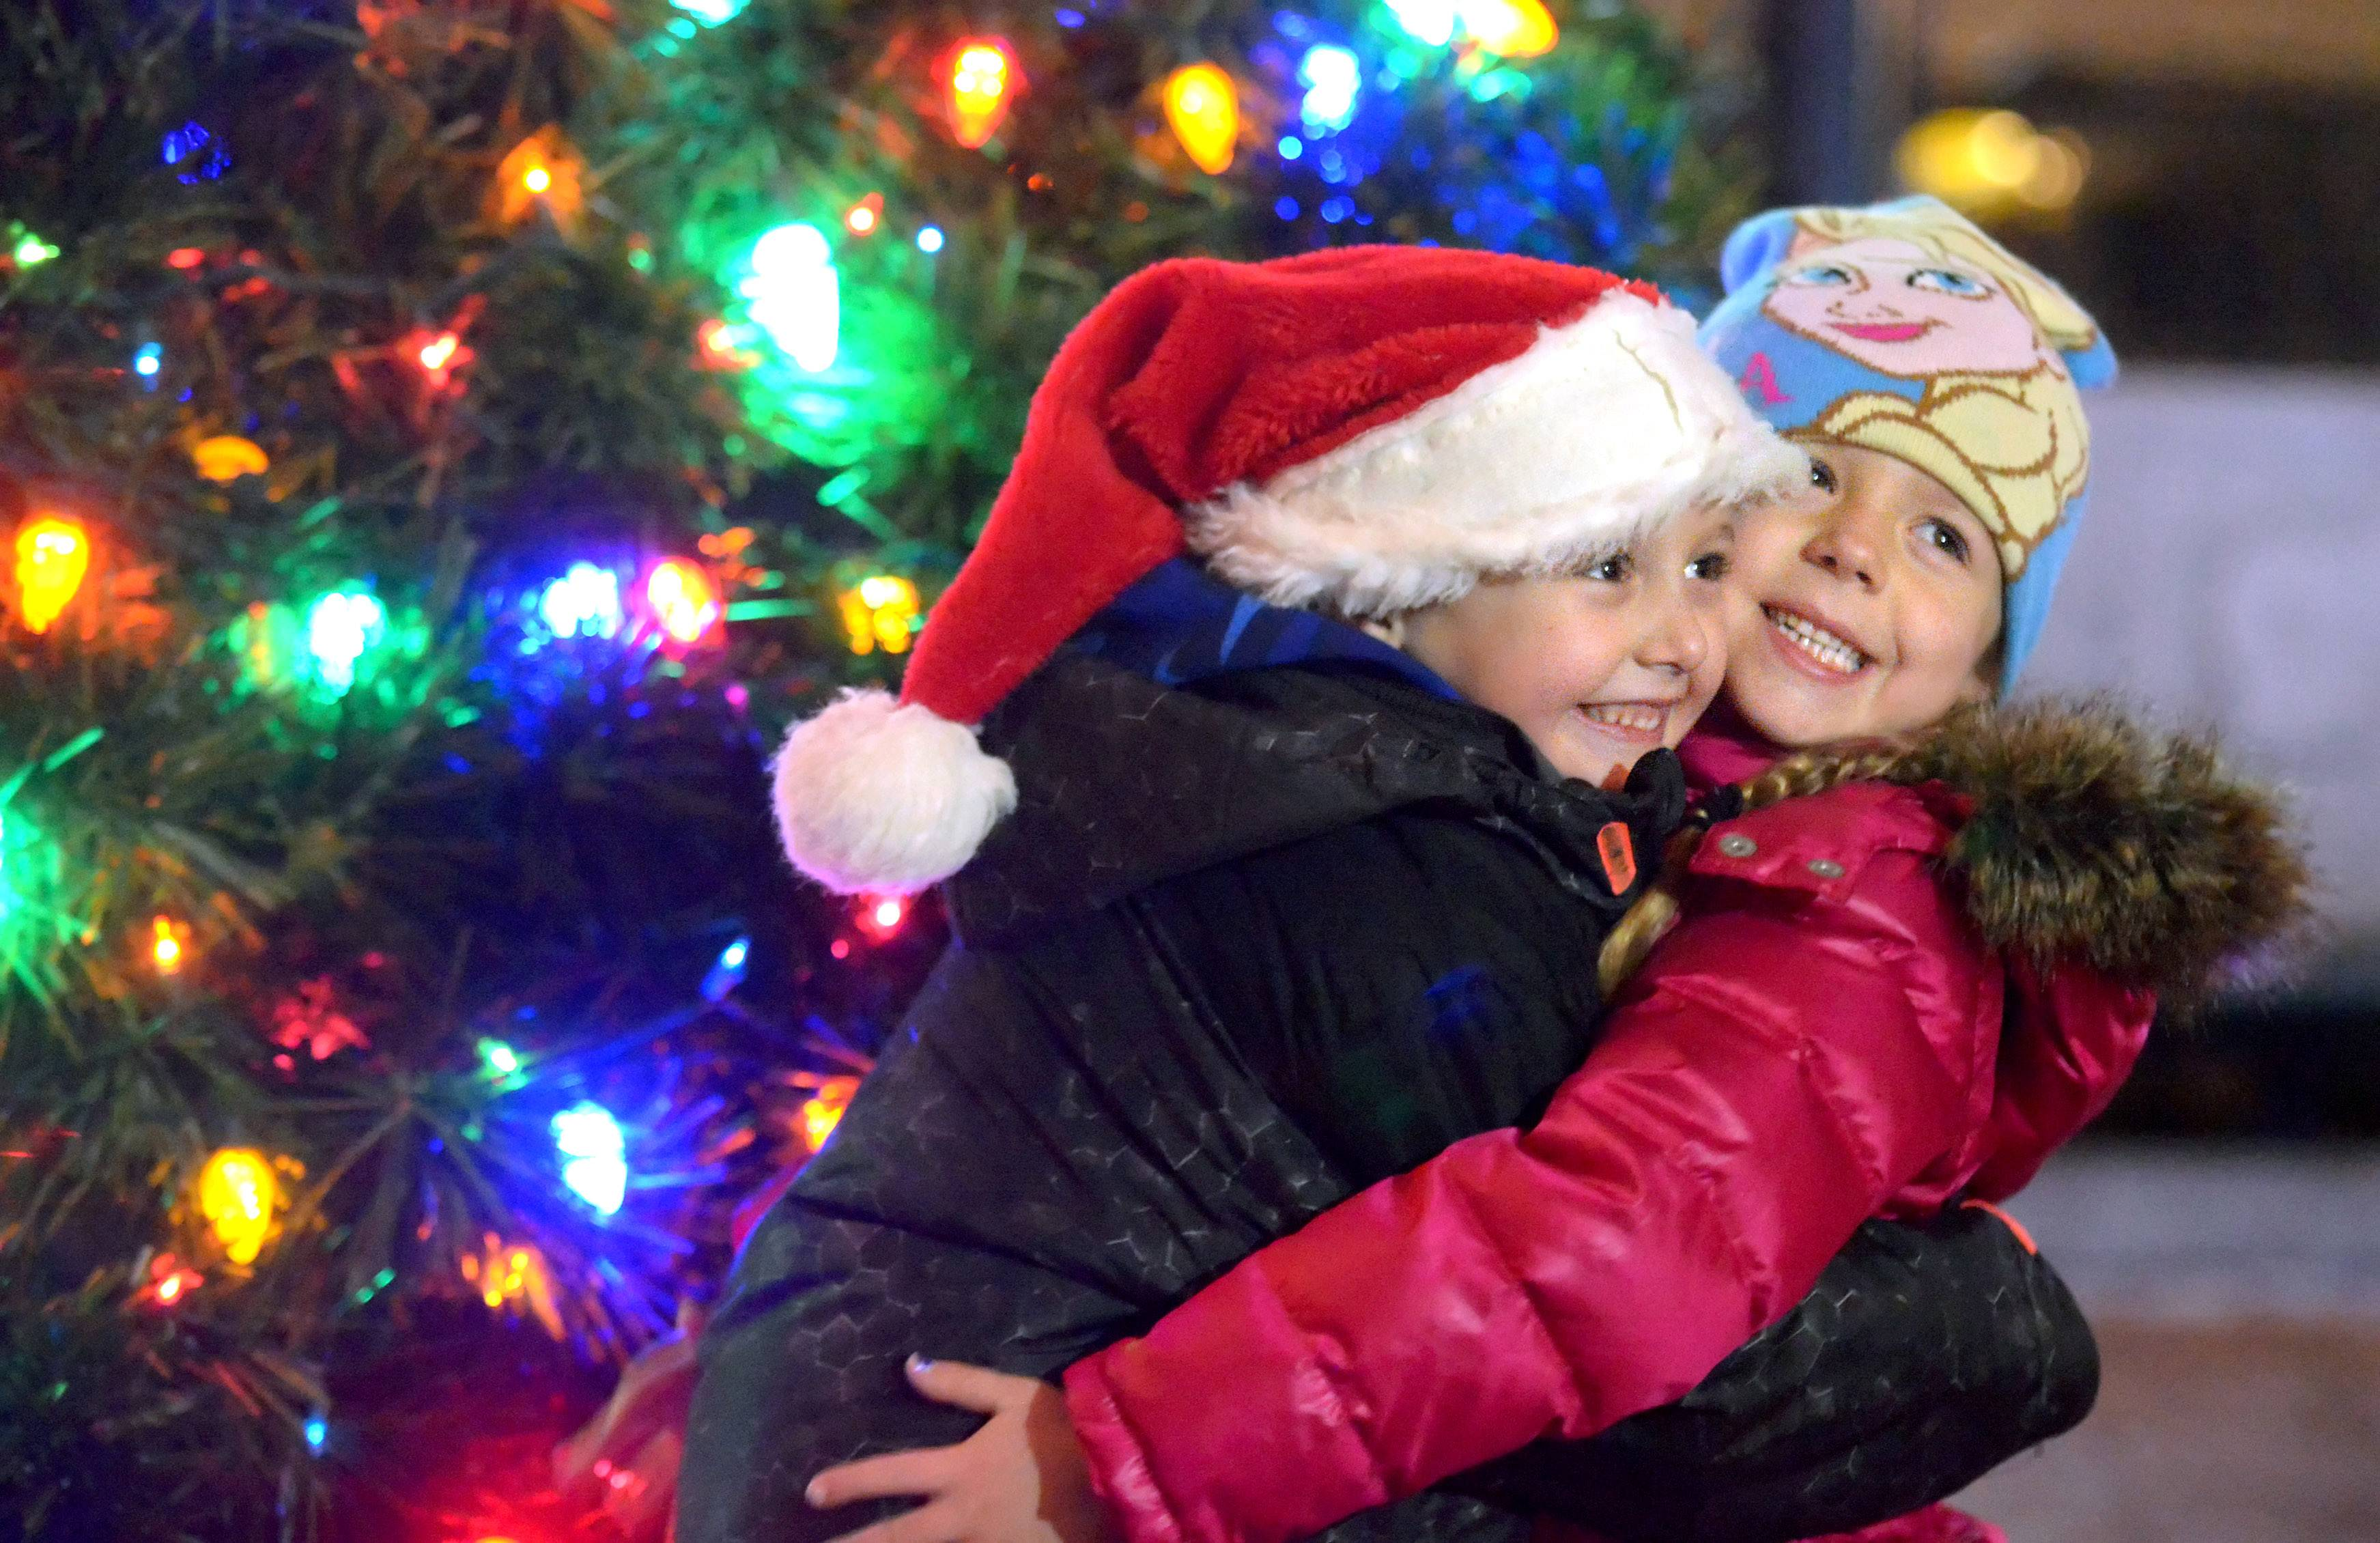 Cousins Frankie Graves, 6, and Aubree O'Dell, 4, both of St. Charles, embrace for a photo for their aunt Donna Honeyman of St. Charles in front of one of the trees in the First Street Plaza at the St. Charles Holiday Homecoming Friday night. The duo have been coming ever since they were born; their aunt has been coming since the 1970s.